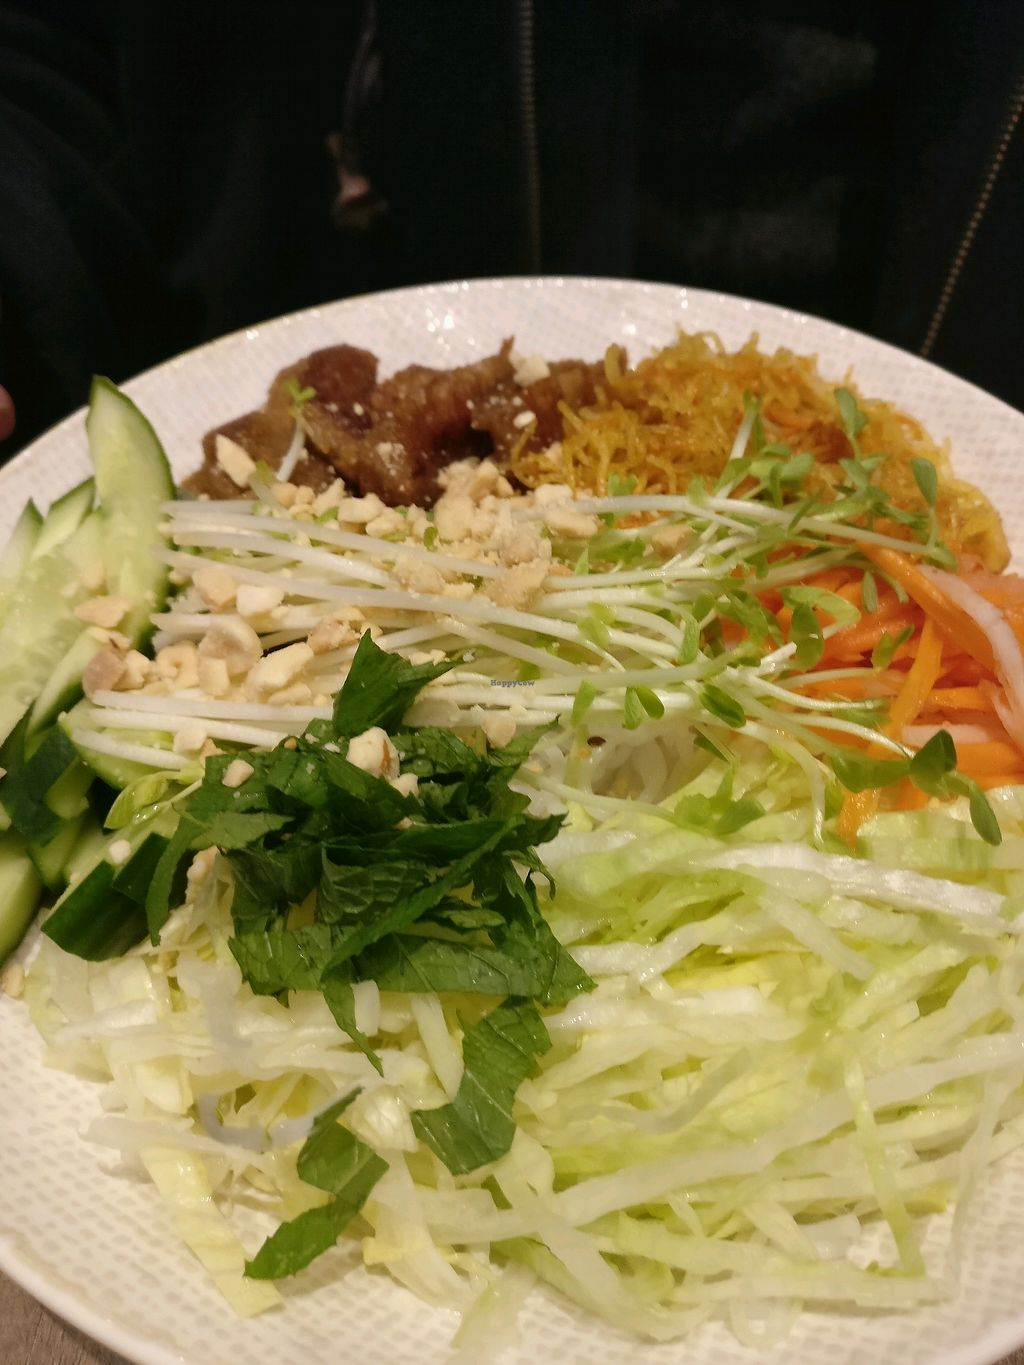 """Photo of Olivia Spring Cafe  by <a href=""""/members/profile/Aloo"""">Aloo</a> <br/>vermicelli salad <br/> December 3, 2017  - <a href='/contact/abuse/image/94297/331780'>Report</a>"""